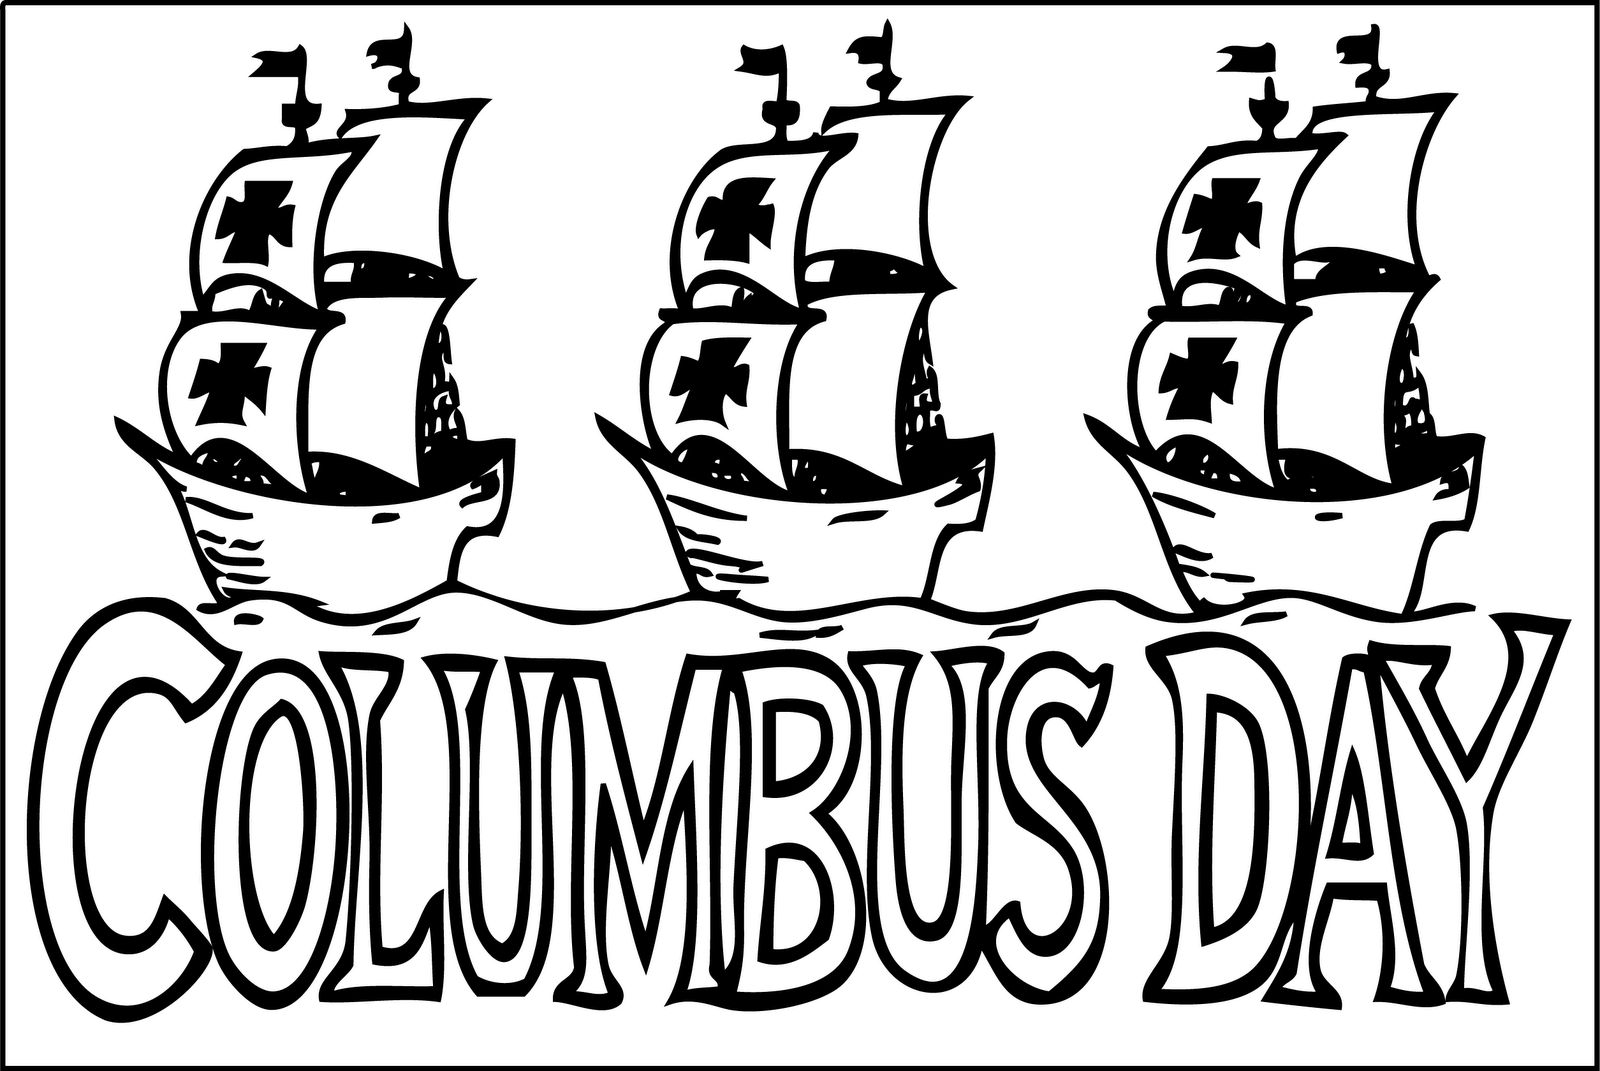 Columbus Day Schedule 10 08 12